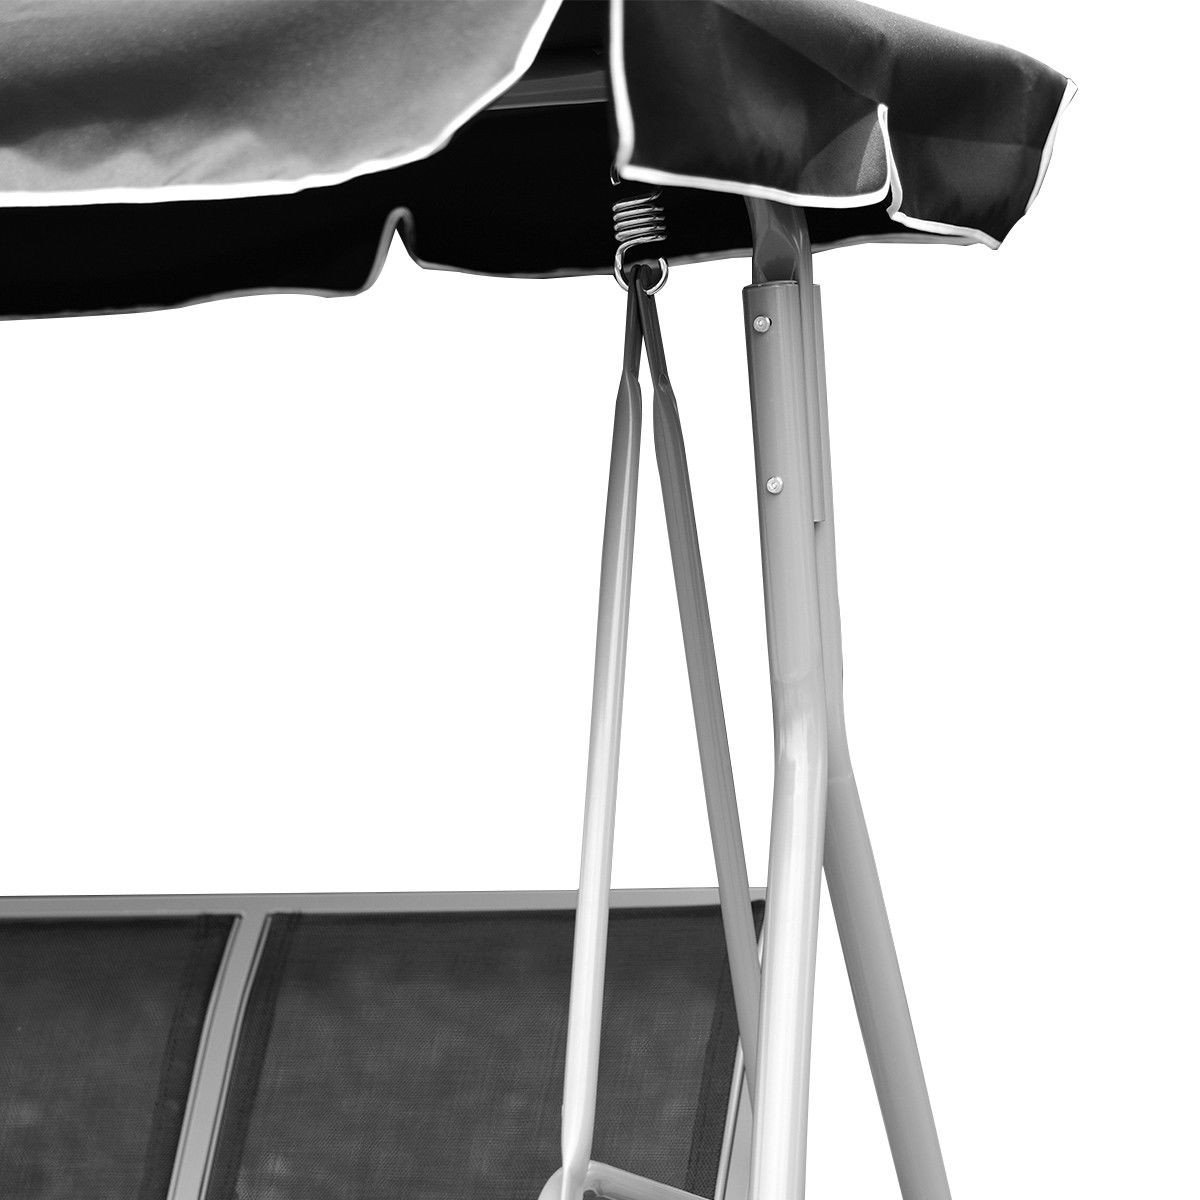 Dayanaprincess 3 Persons Patio Powder Finish Canopy Deck Swing Bench Heavy Duty Steel Construction Outside Chairs for Porch Garden Backyard Decor by Dayanaprincess (Image #7)